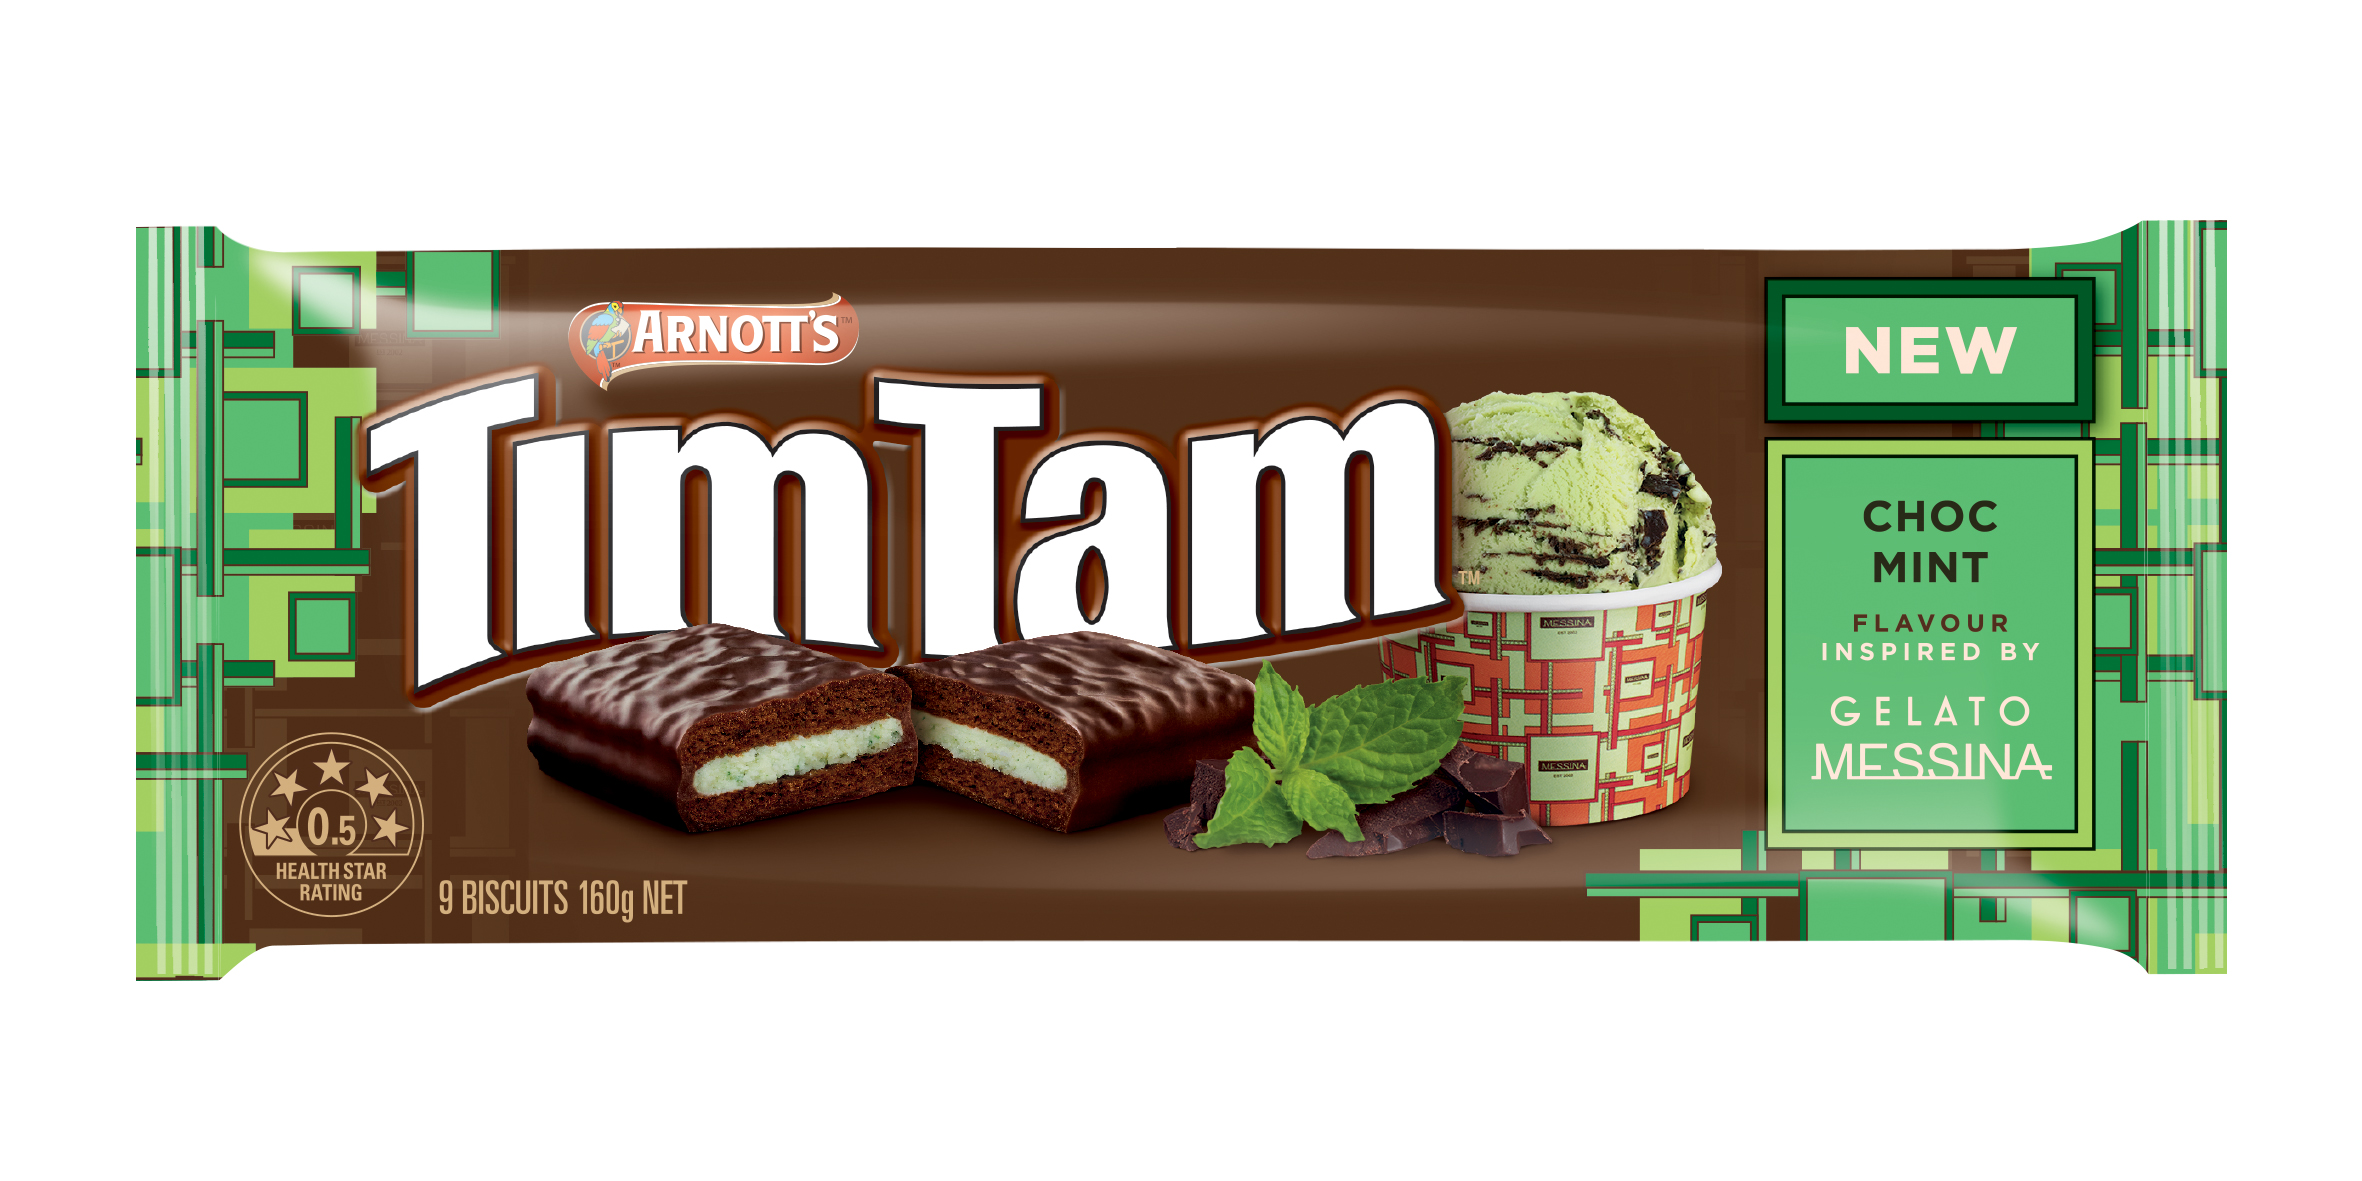 TIMTAM_MESSINA_Stg20_ChocMint